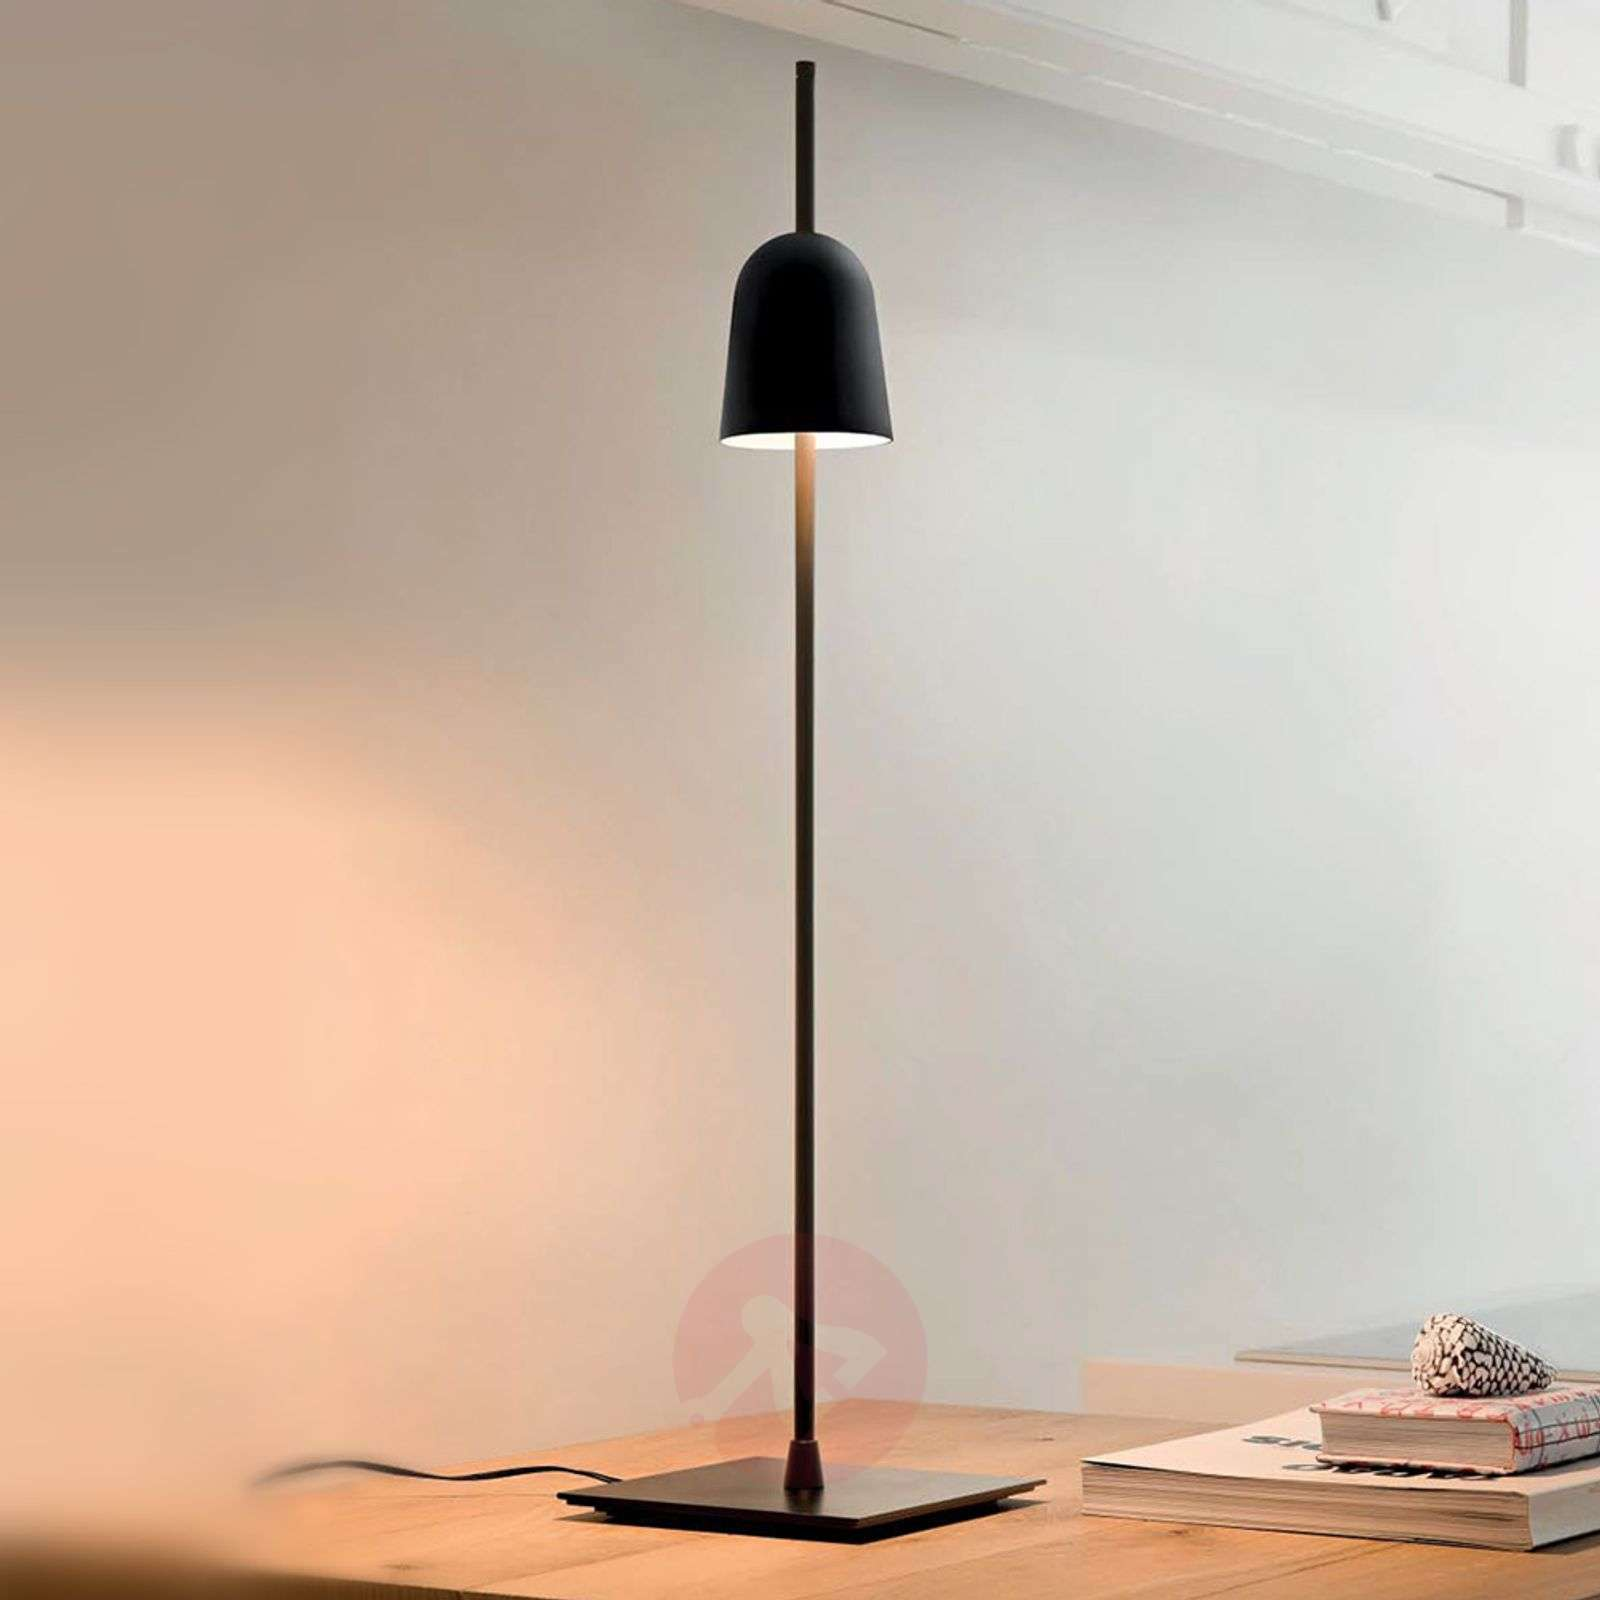 LED table lamp Ascent-6030028-01